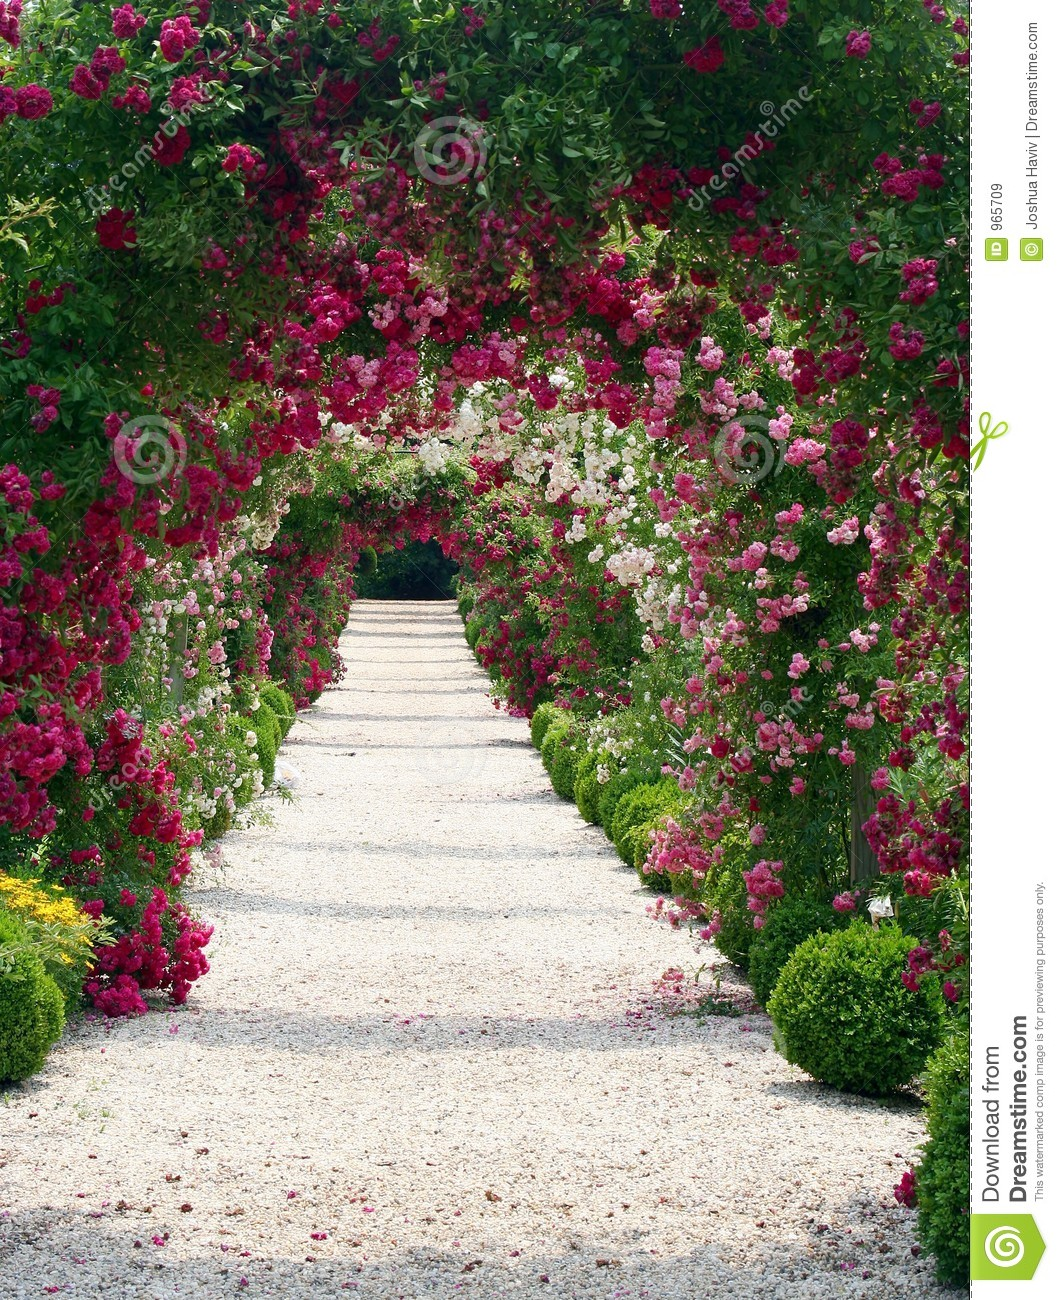 Exceptionnel Rose Garden Landscape. Opening, Background.